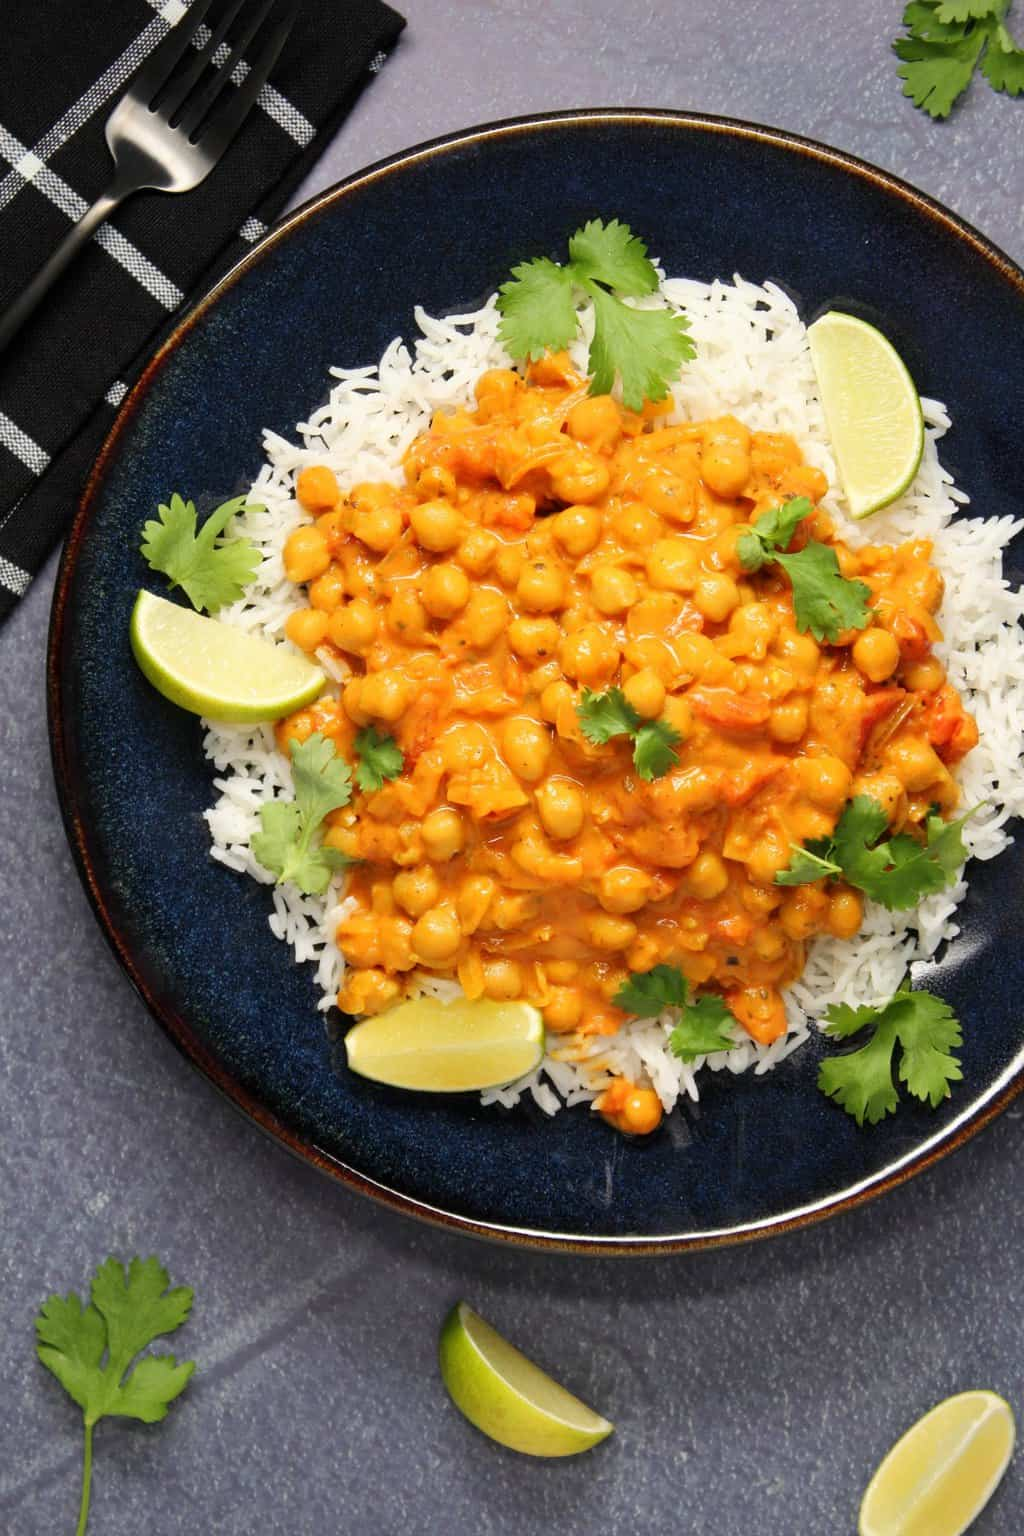 Vegan chickpea curry with basmati rice, fresh cilantro and fresh lime in a black bowl.